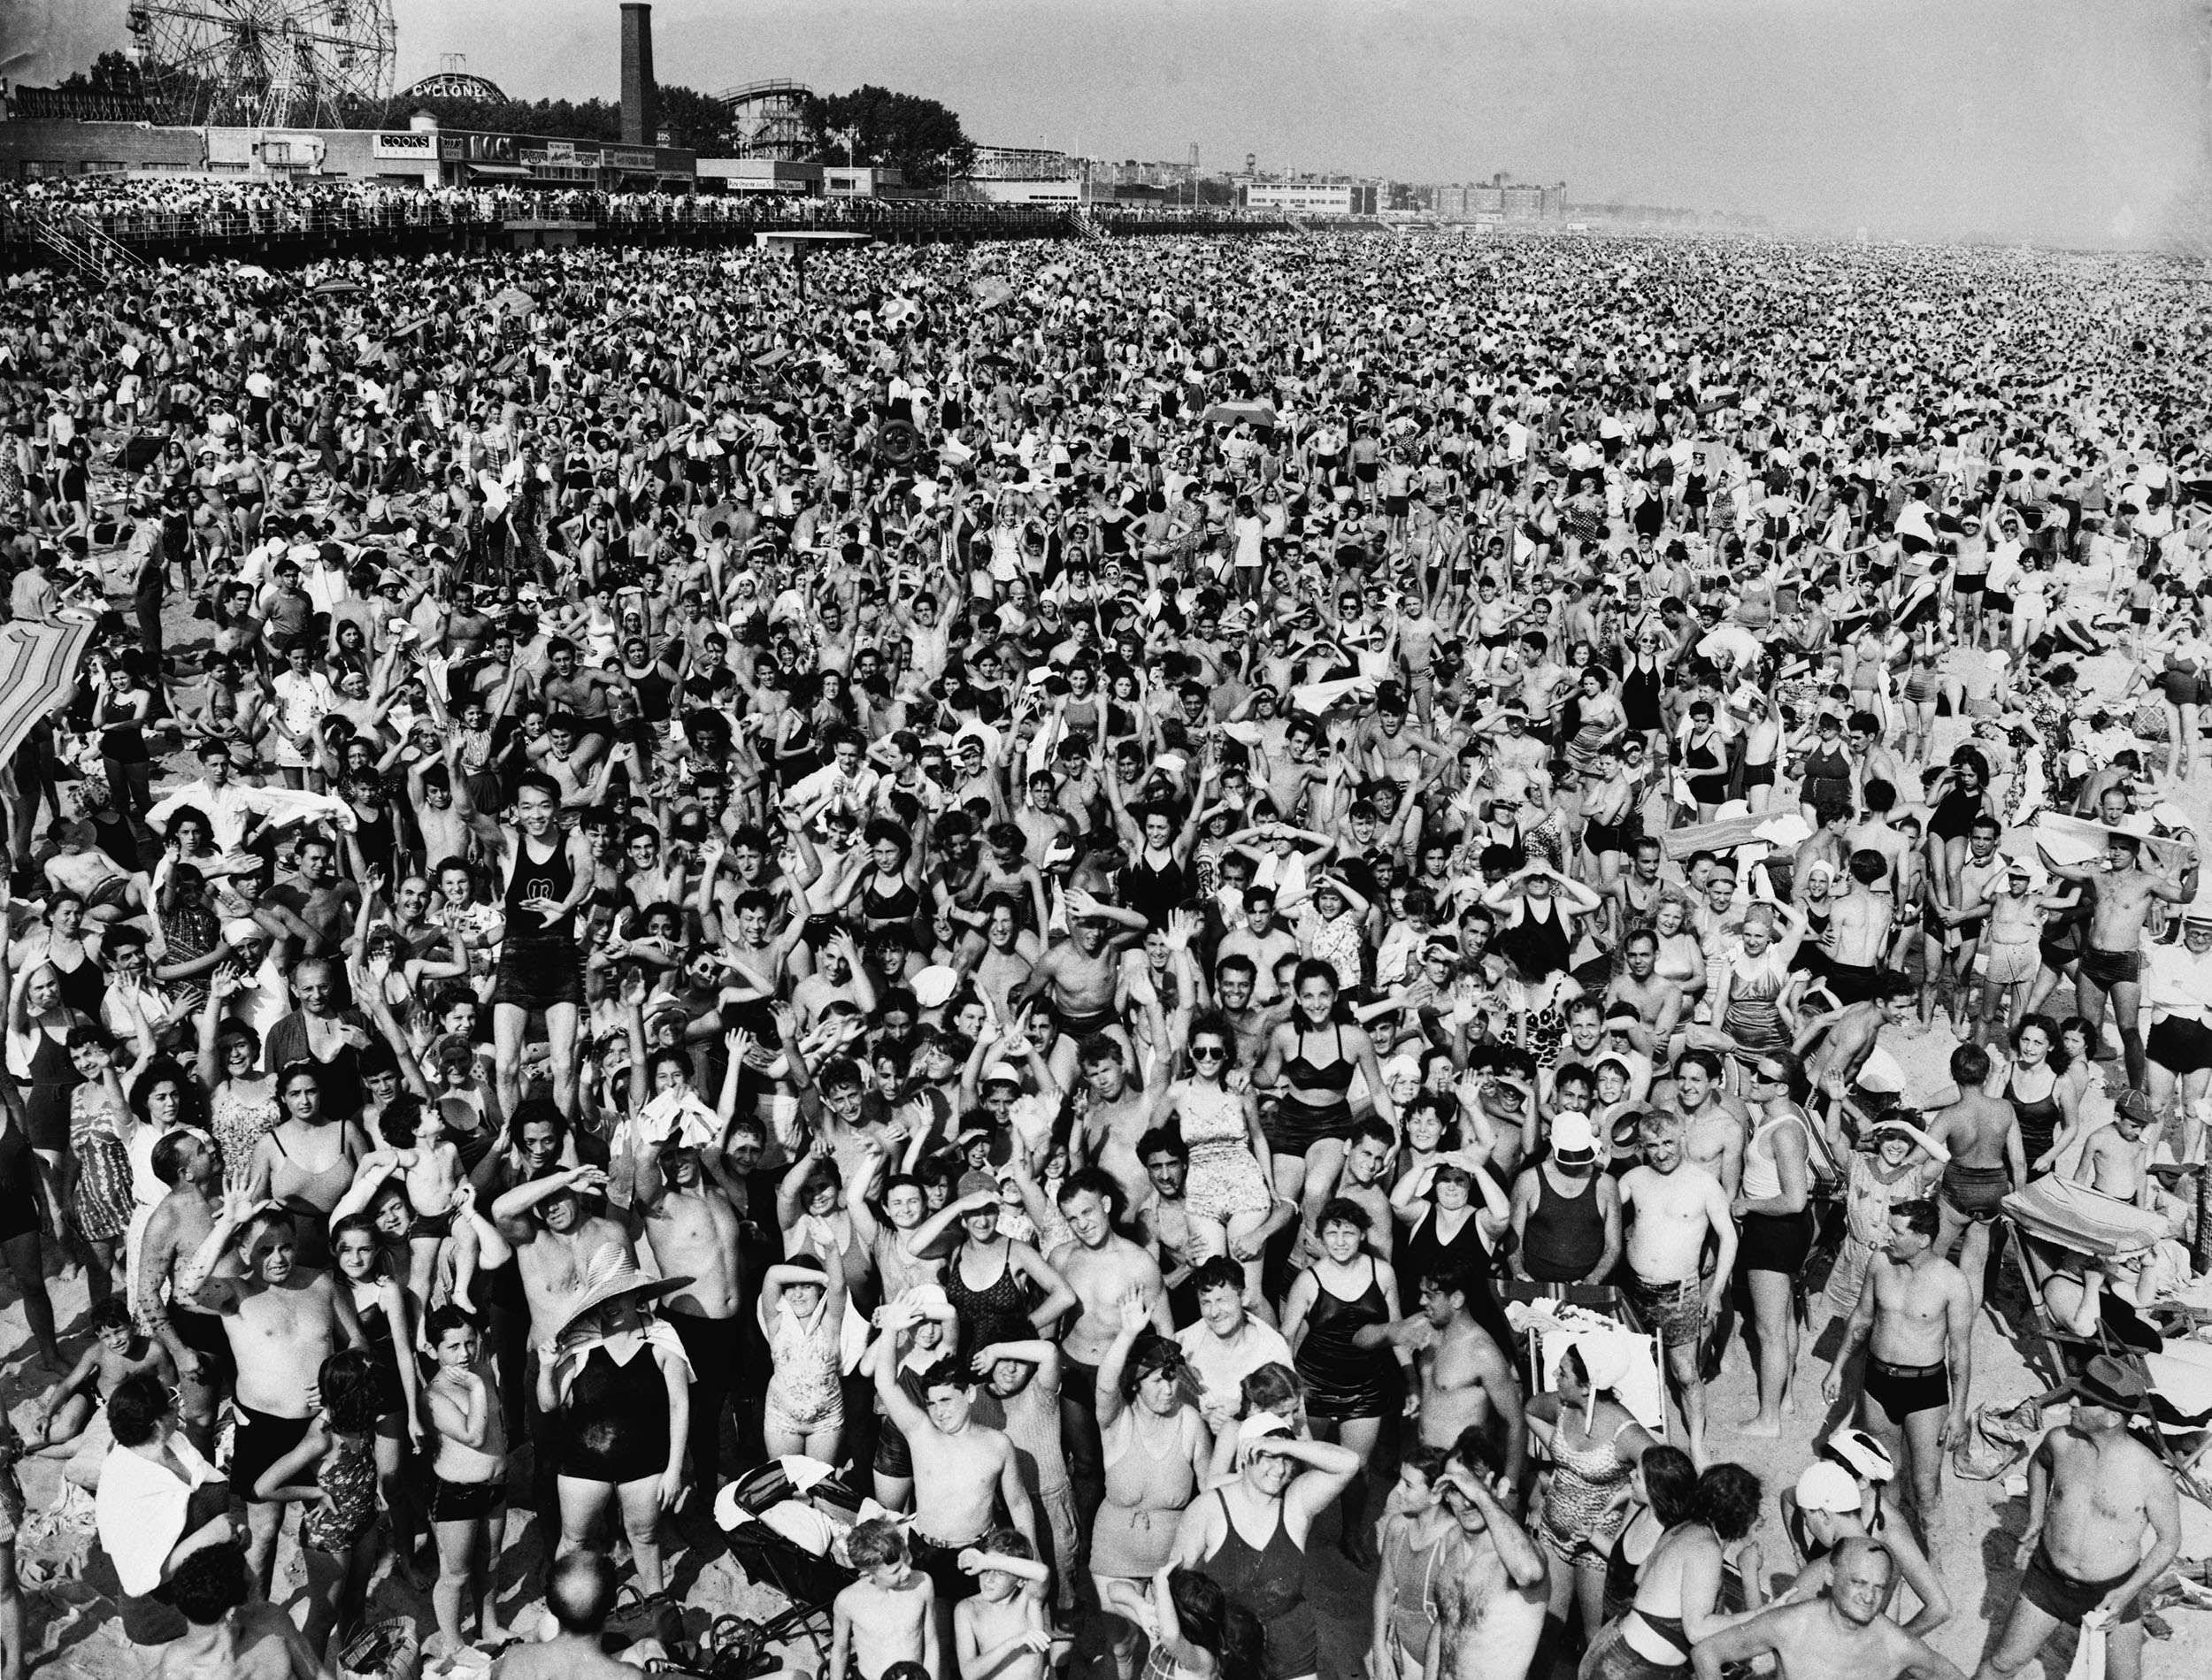 Coney Island on a quiet Sunday afternoon, a crowd of over a MILLION